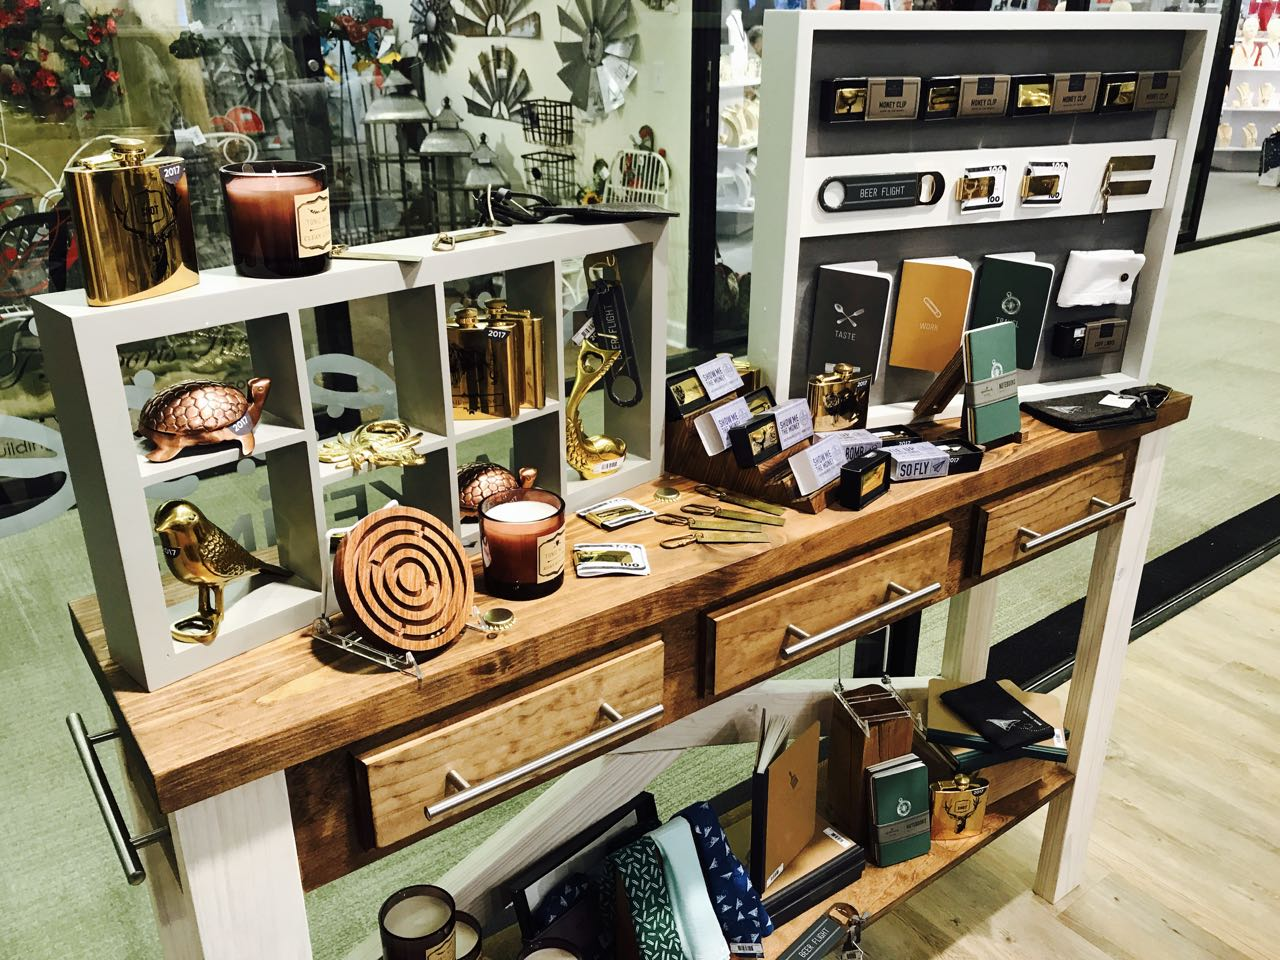 Inspiring visual merchandising for small business retail | Tower